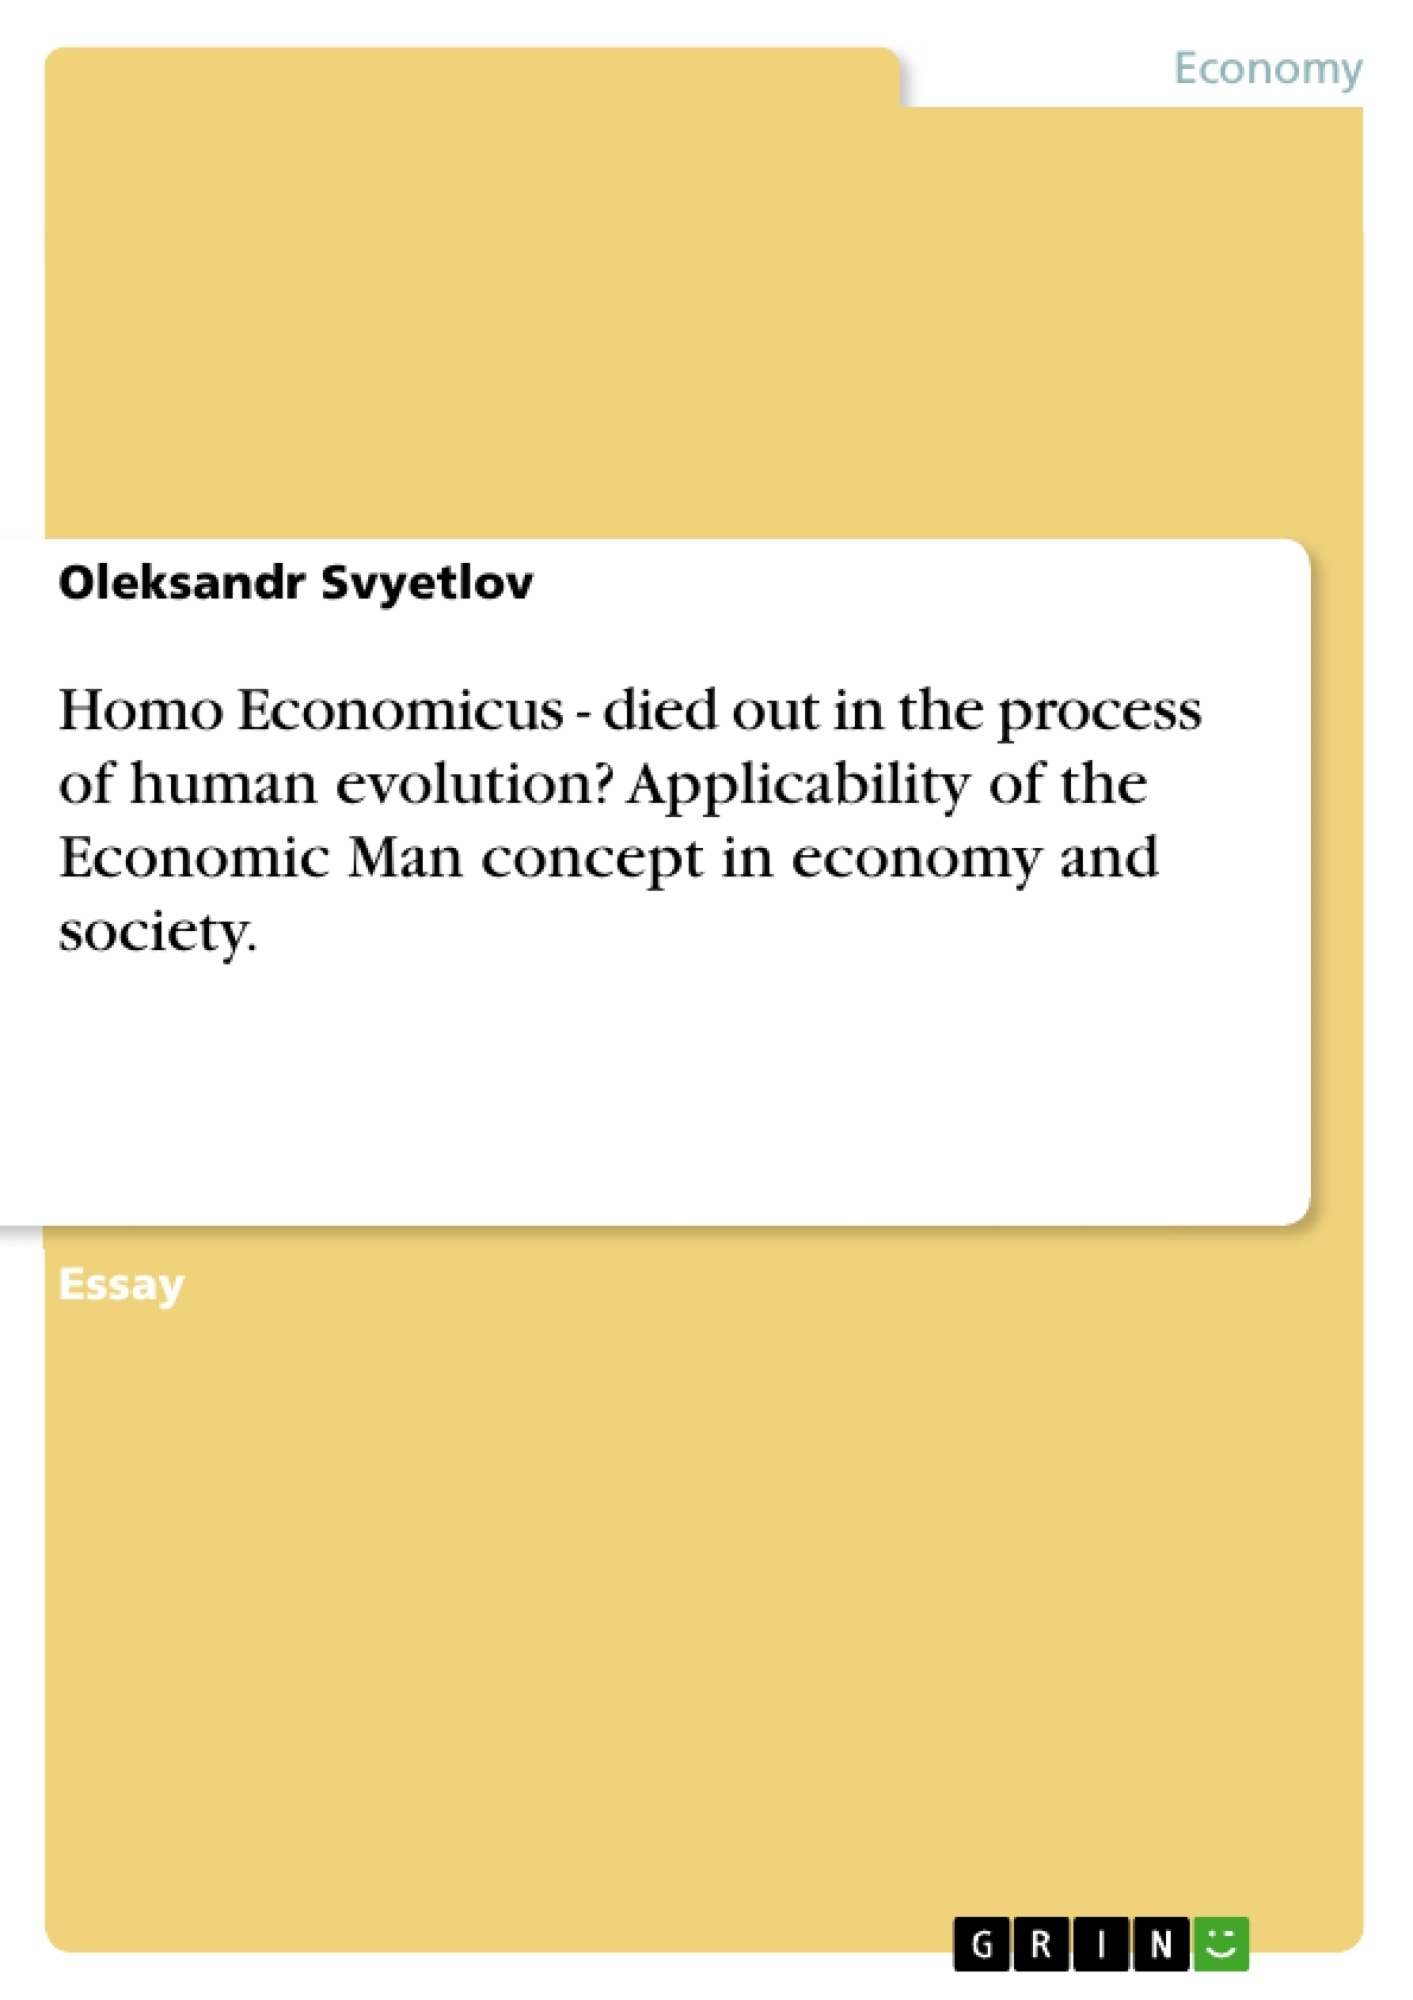 Title: Homo Economicus - died out in the process of human evolution? Applicability of the Economic Man concept in economy and society.